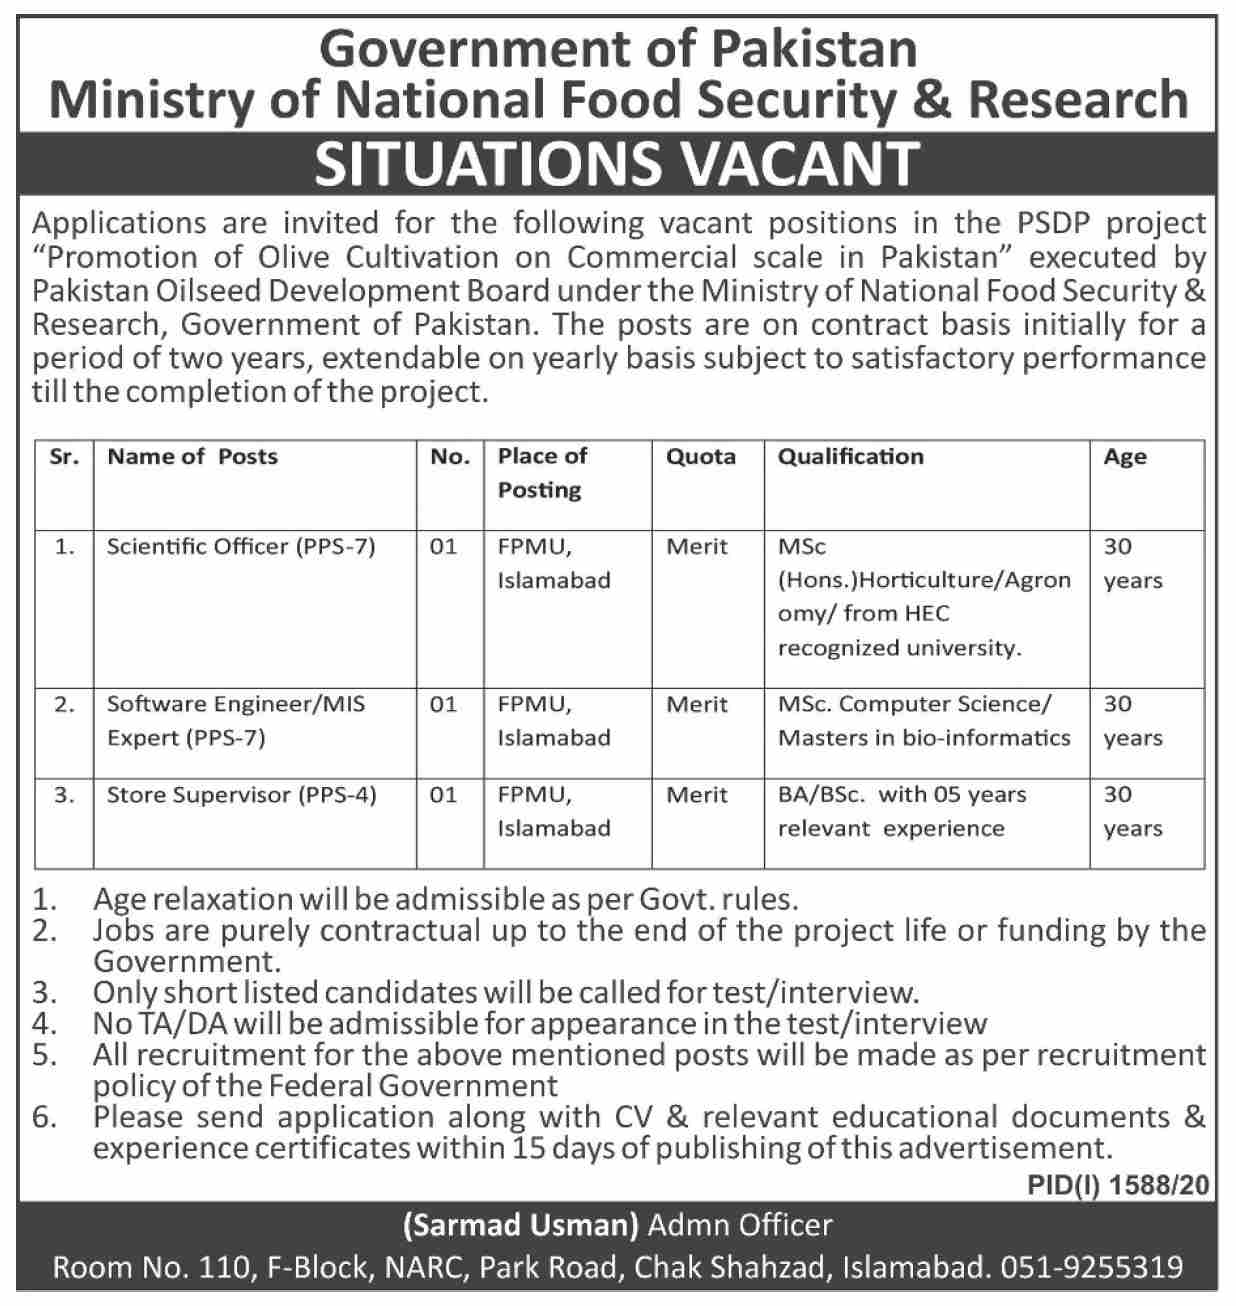 Ministry of National Food Security & Research Jobs September 2020